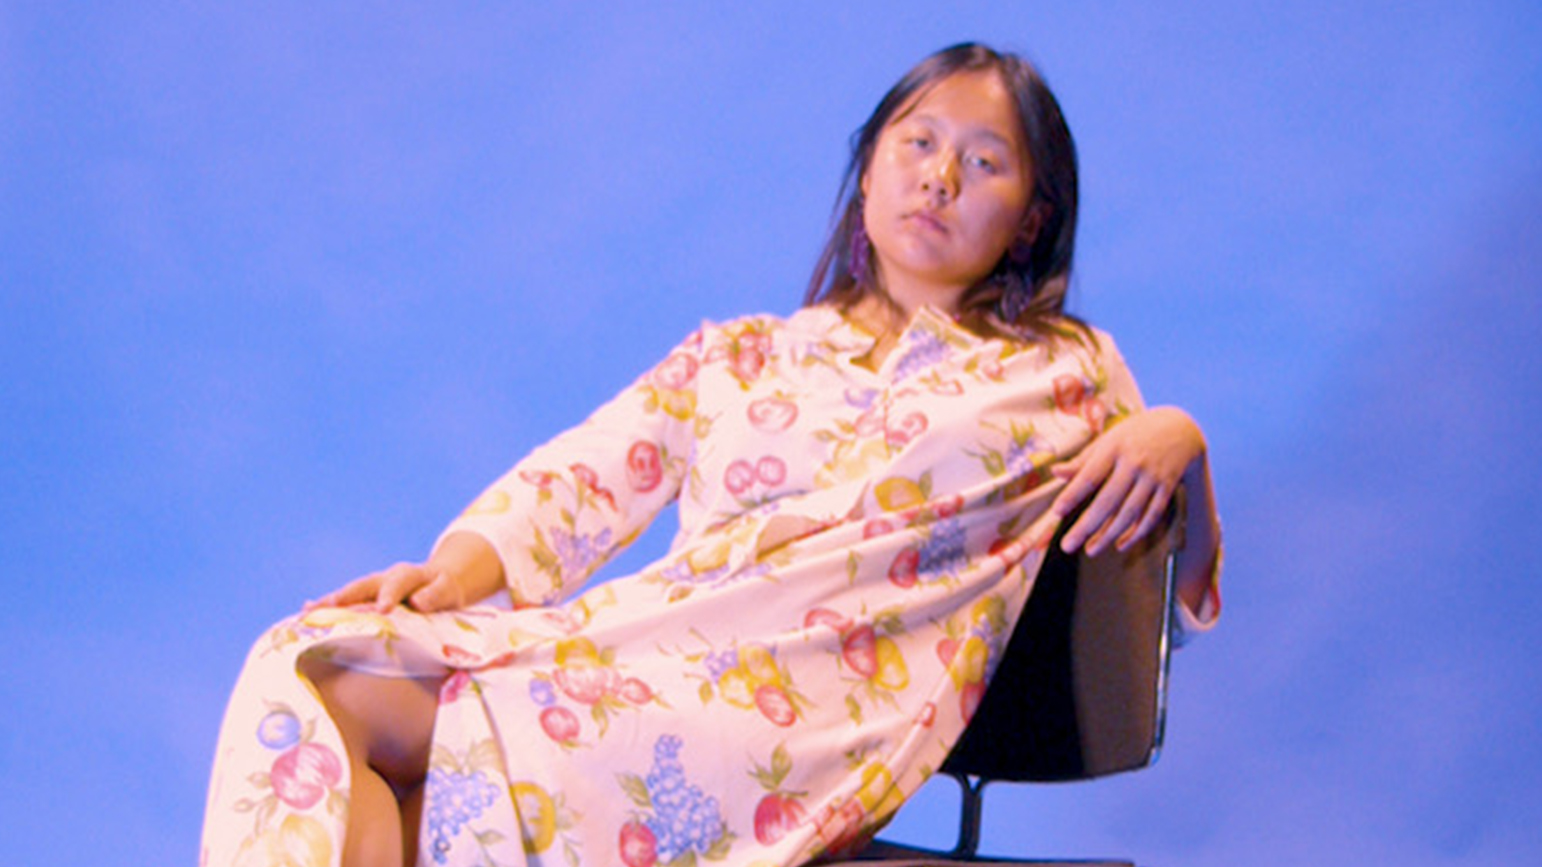 Image of Nana Cheon leaning back in a chair against a blue background